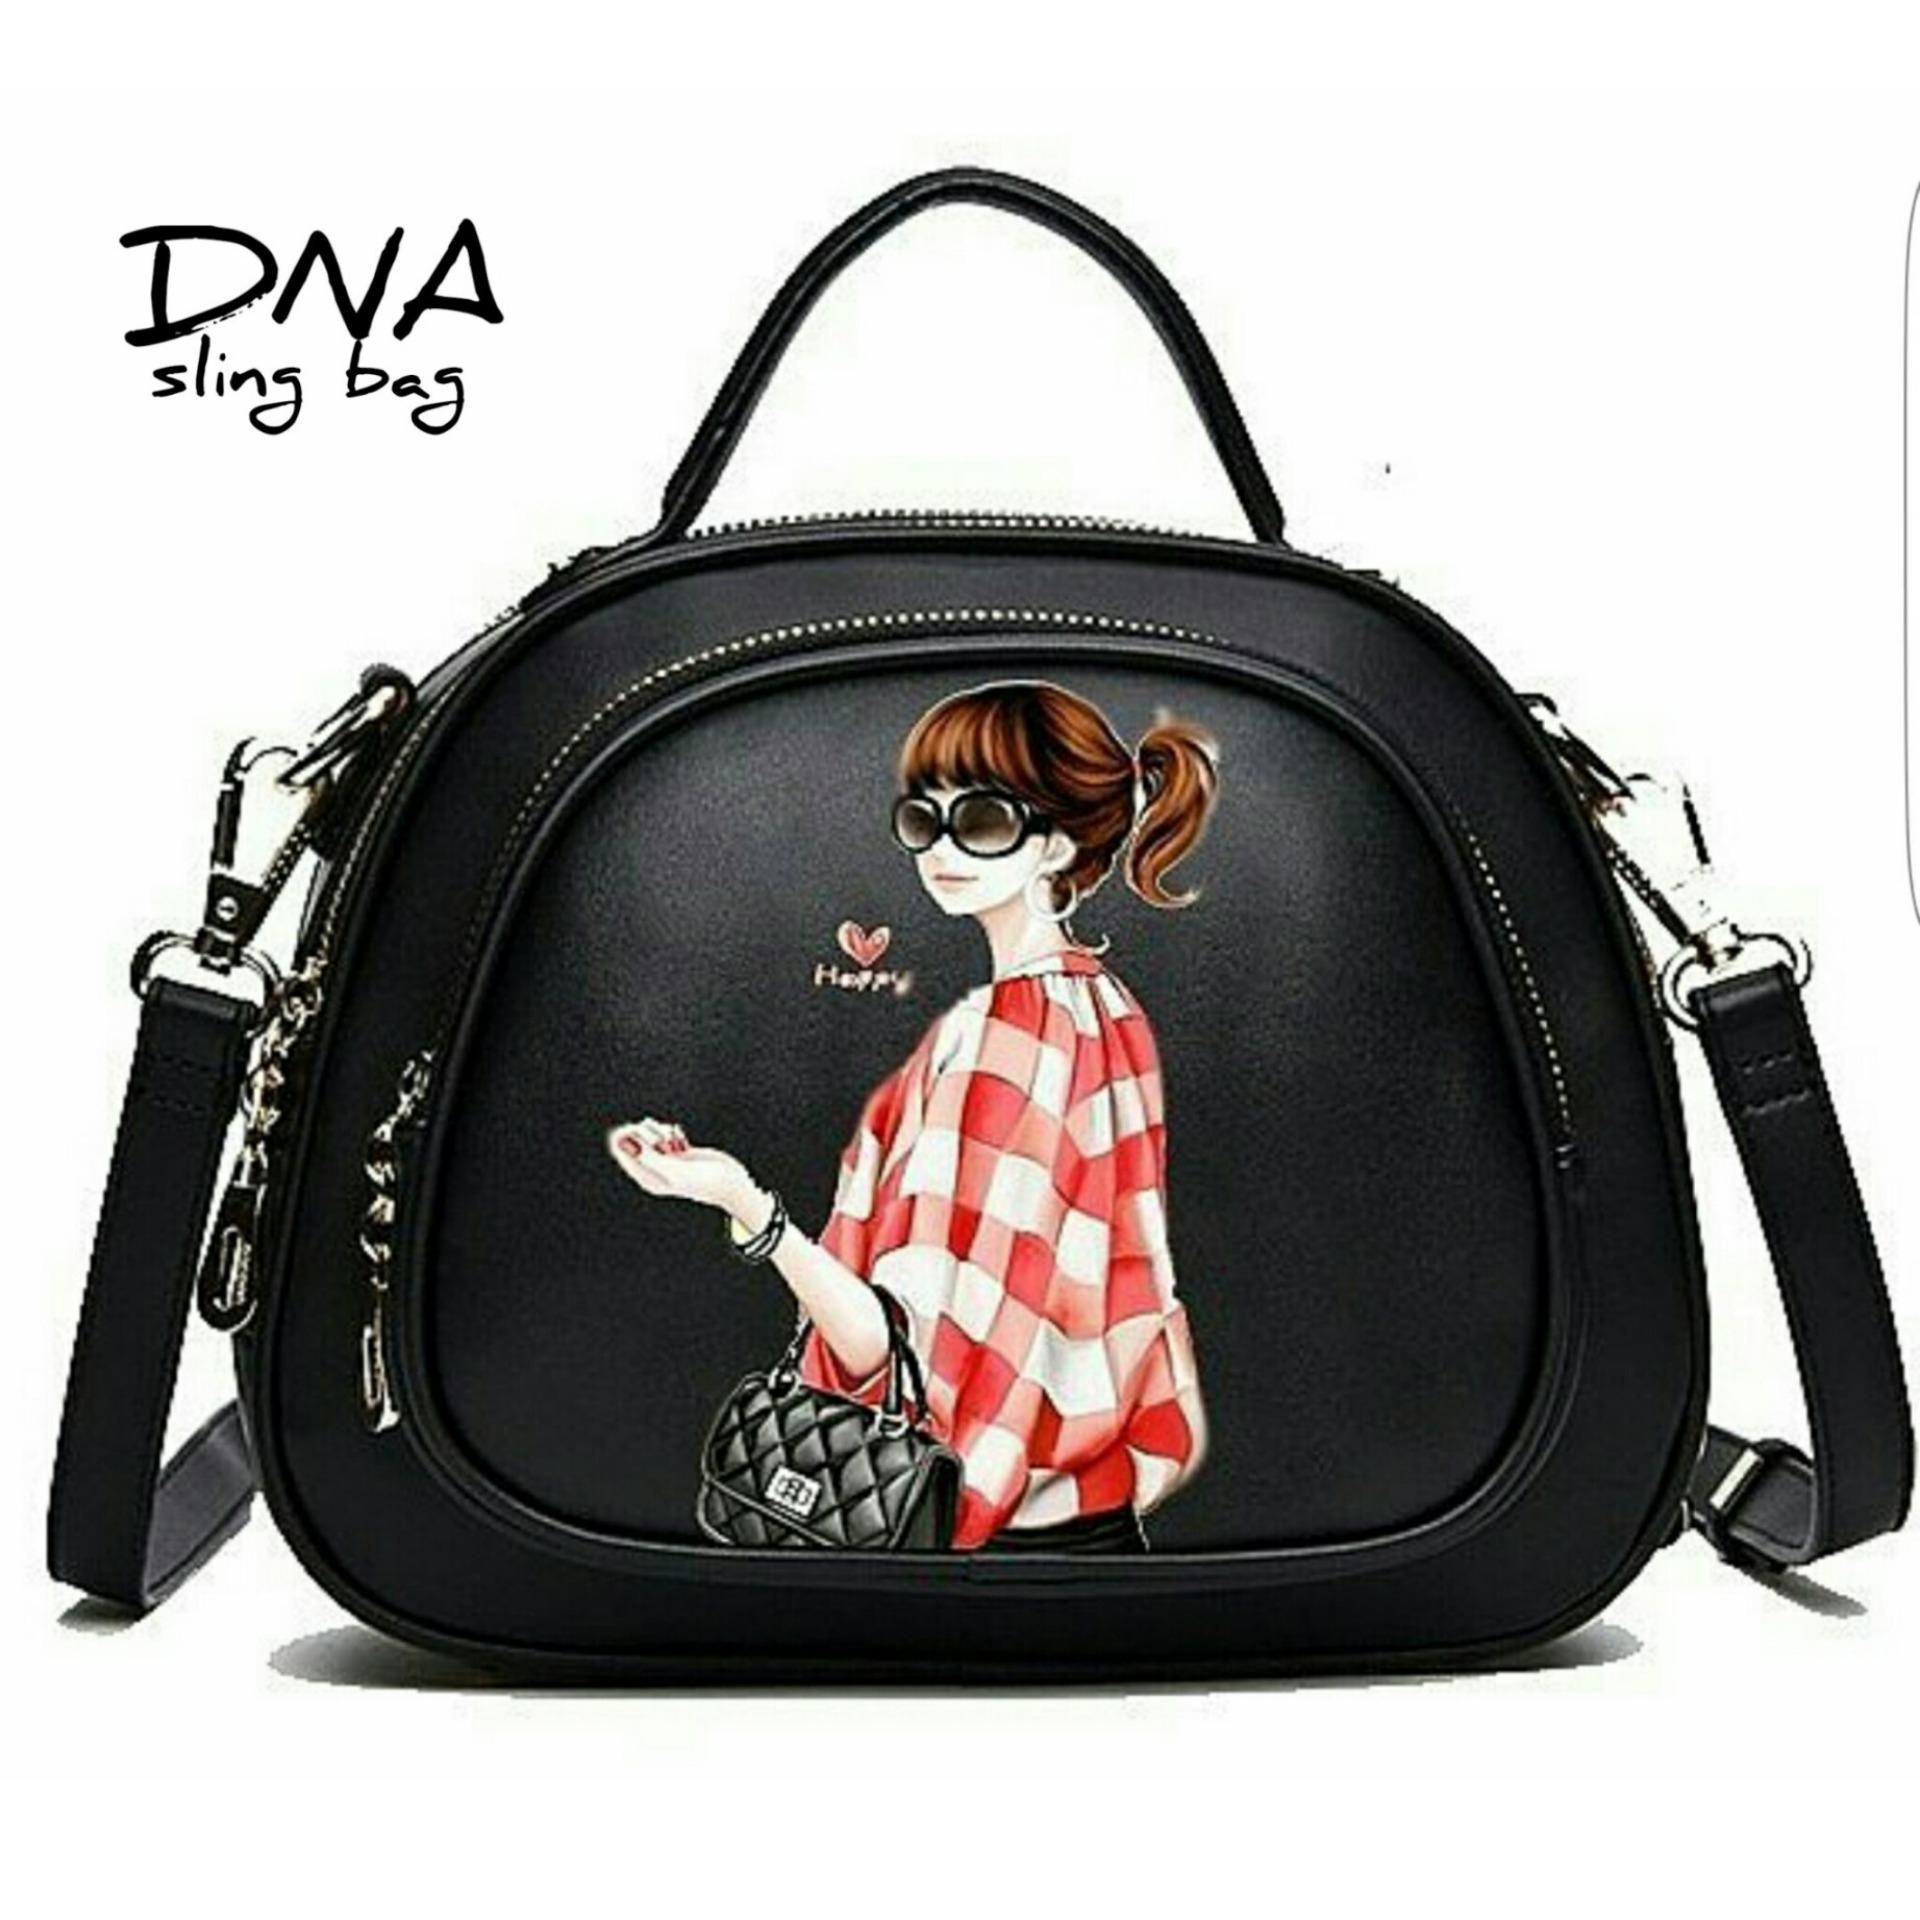 Cross Body Bag   Sling Bag   Tas Selempang Korean Style Fashionable Girl . 99931f7ba9